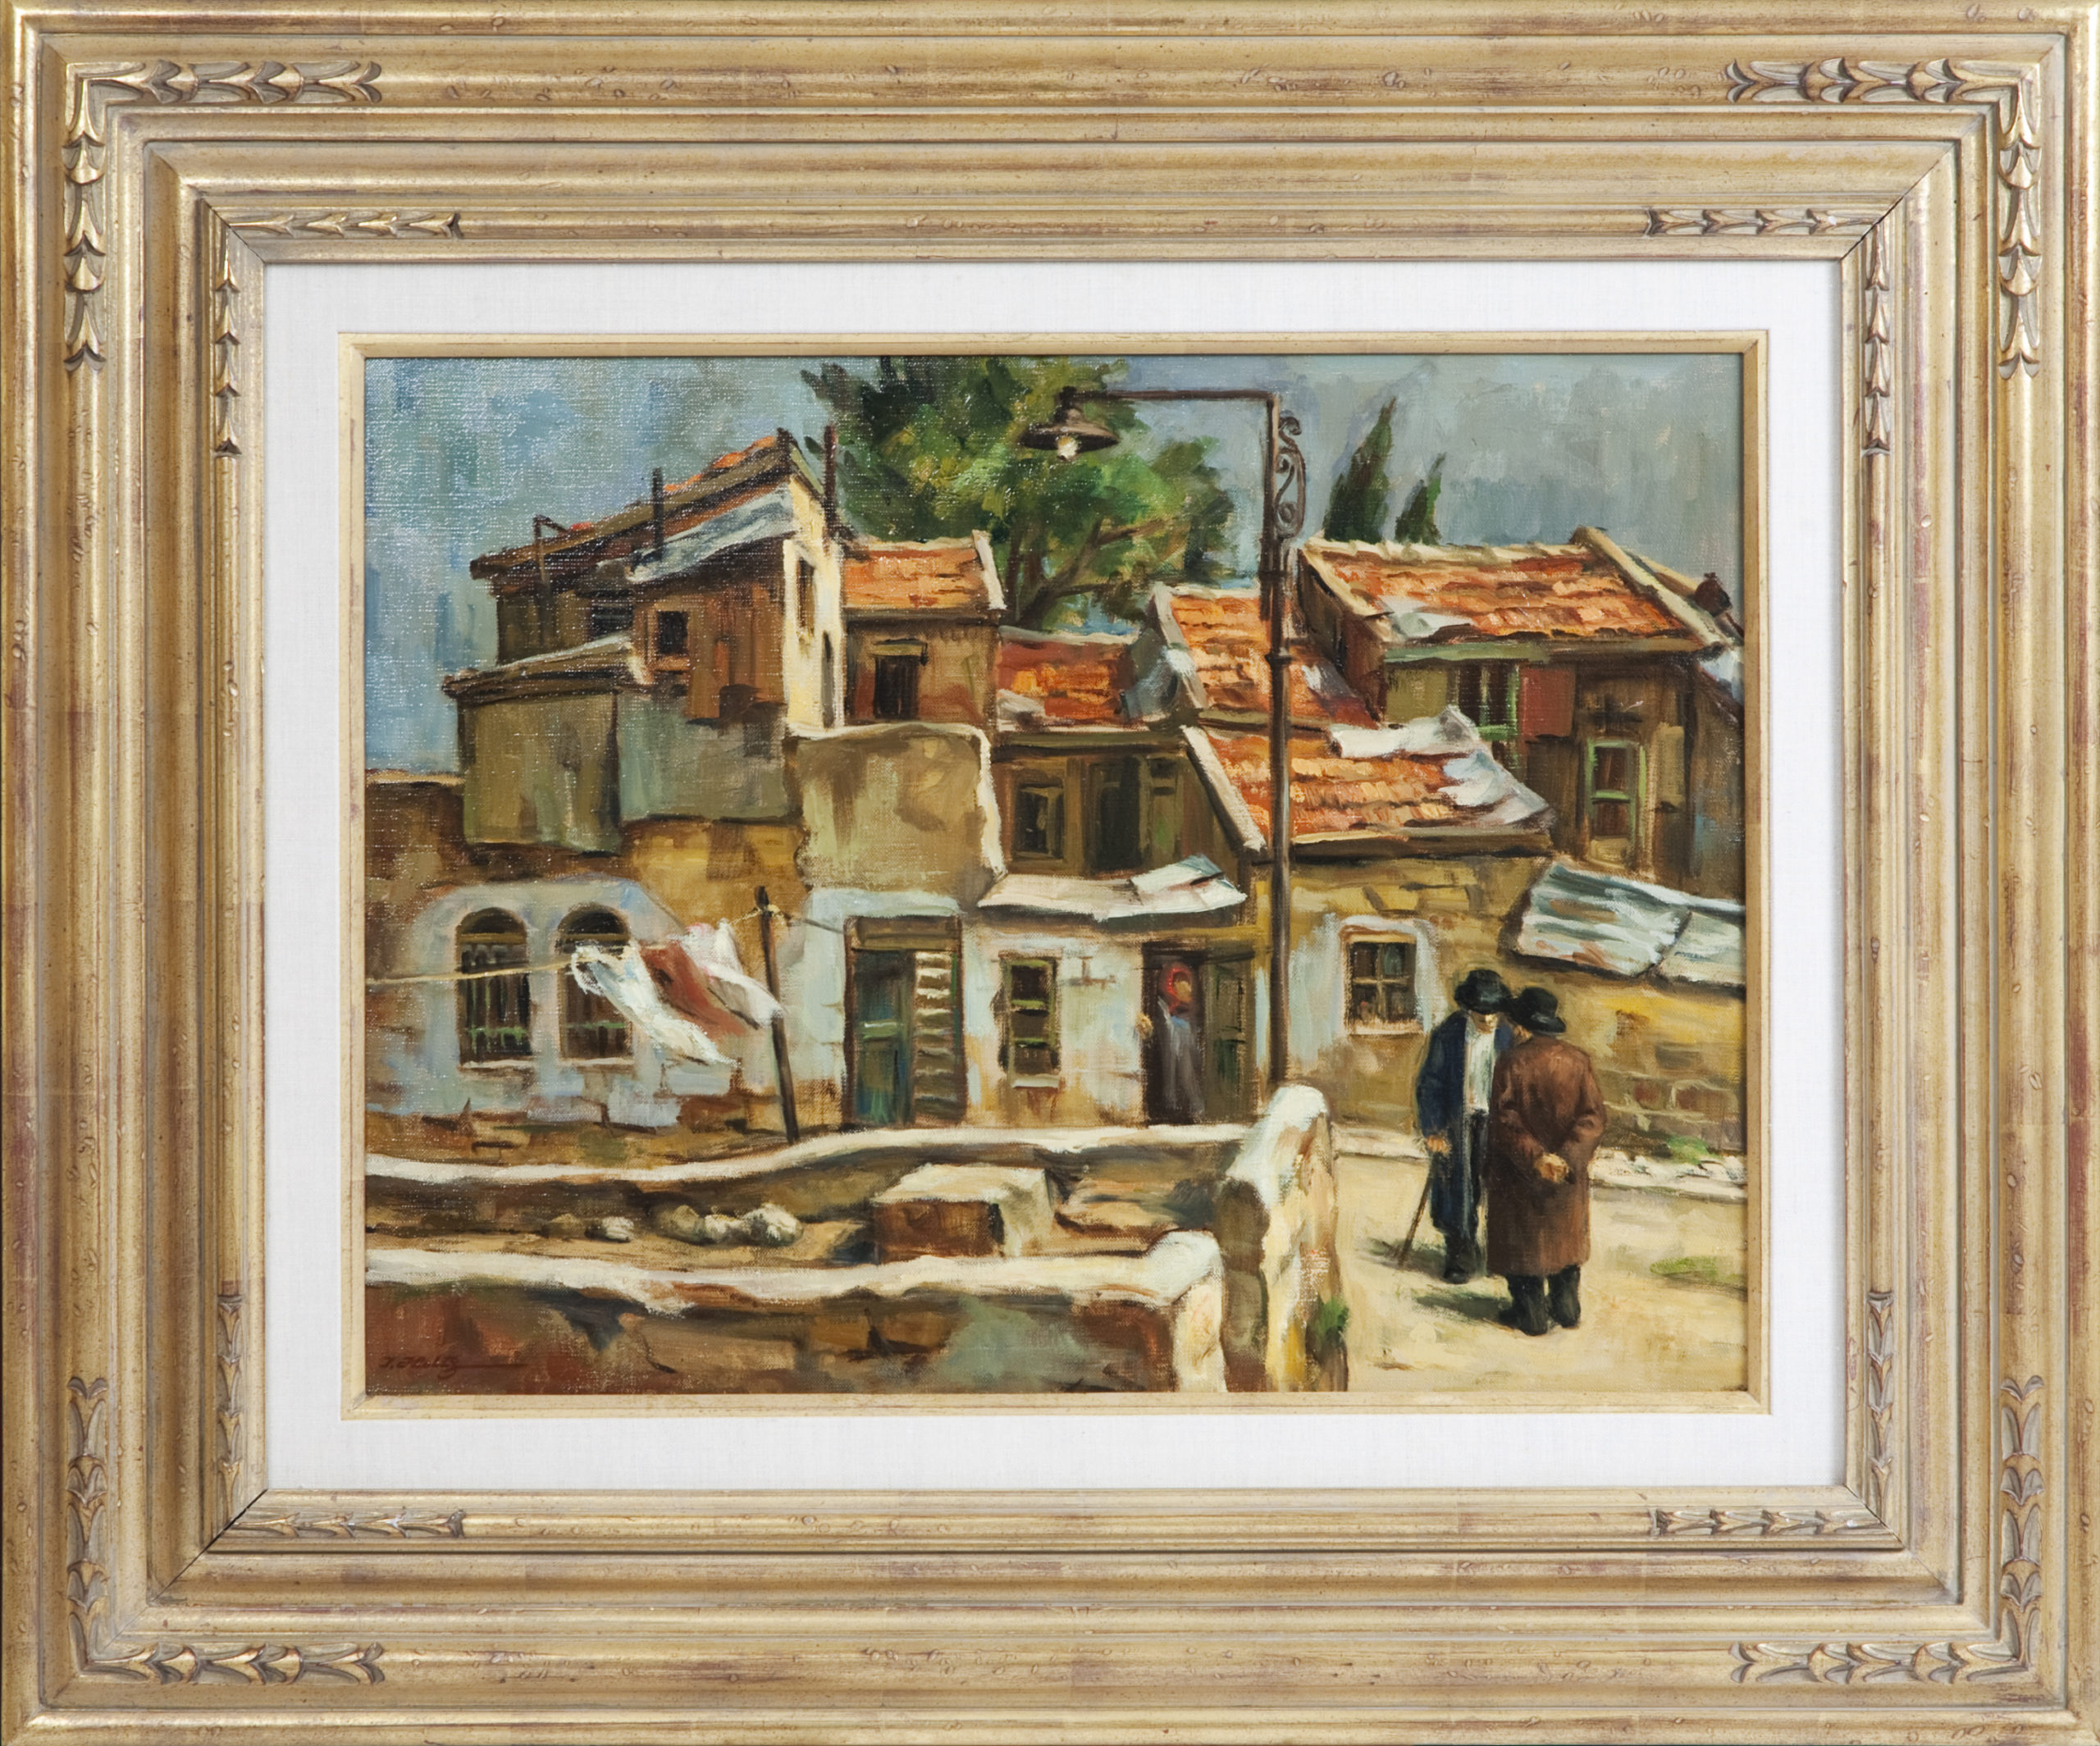 090 Old Houses Jerusalem 1967 - Oil on Canvas - 24 x 18 - Frame: 36 x 30 x 2.5